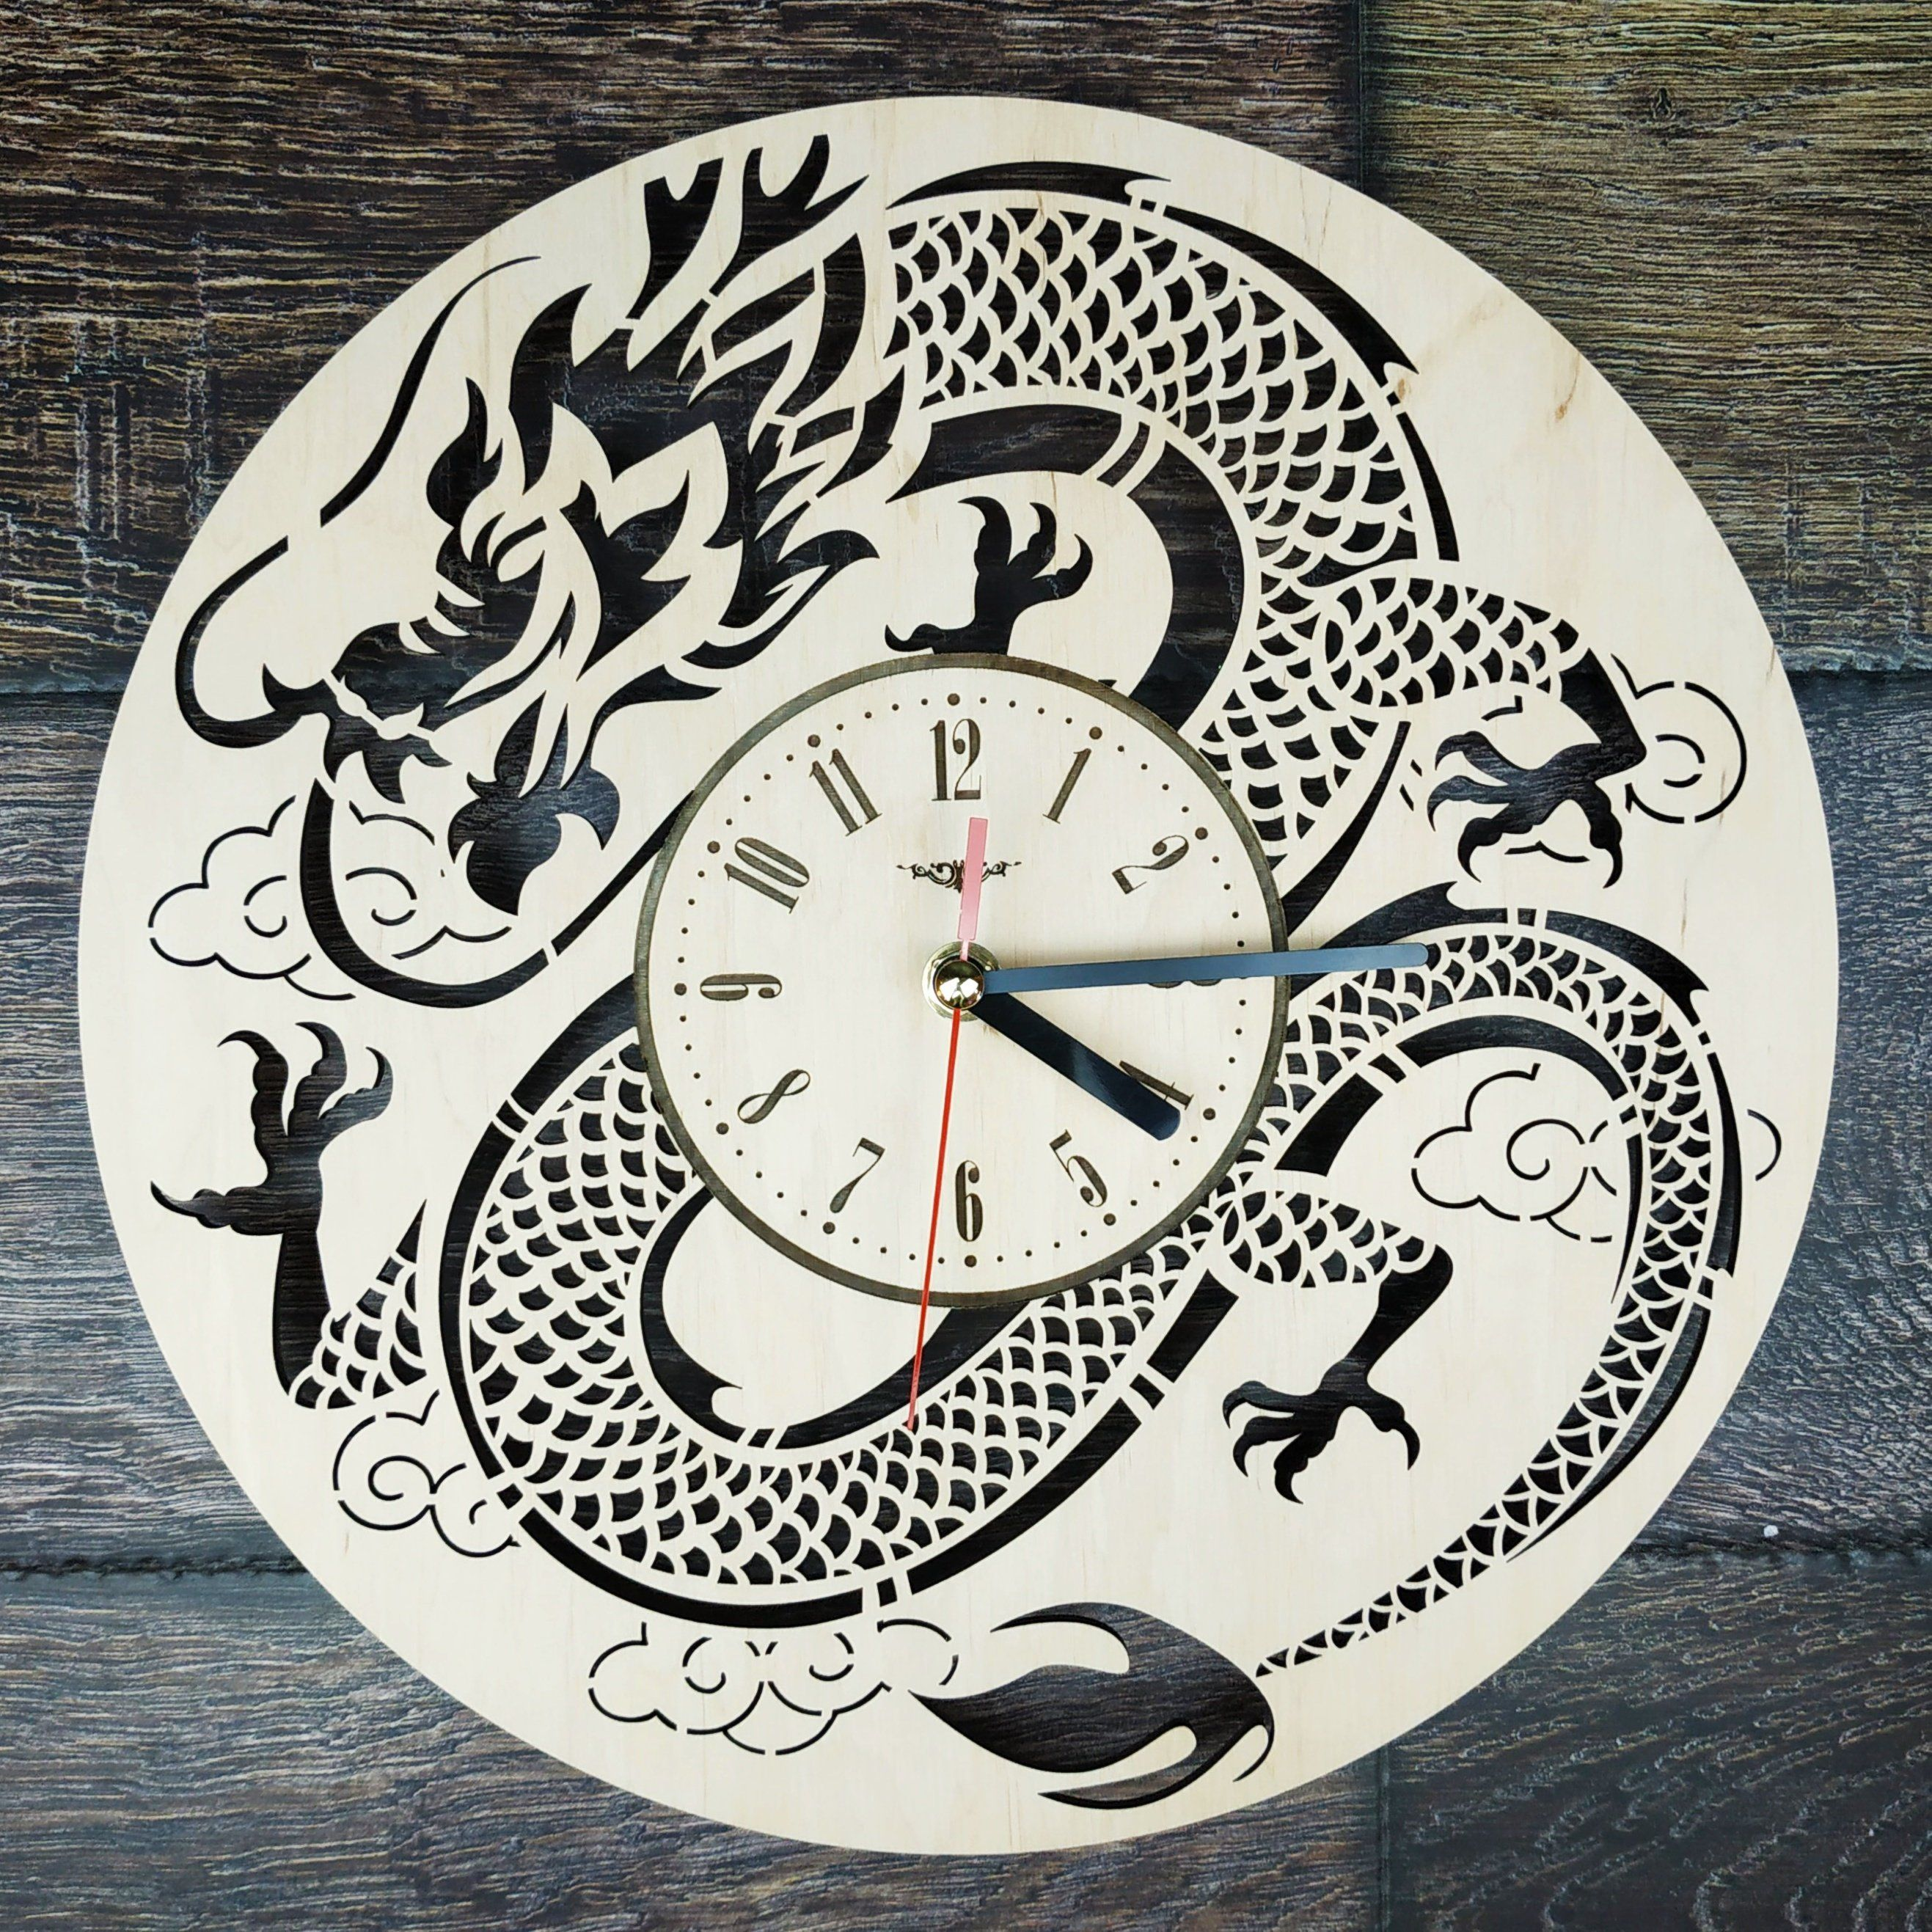 Japanese Dragon Wall Clock Wood Decor For Home Office Kitchen